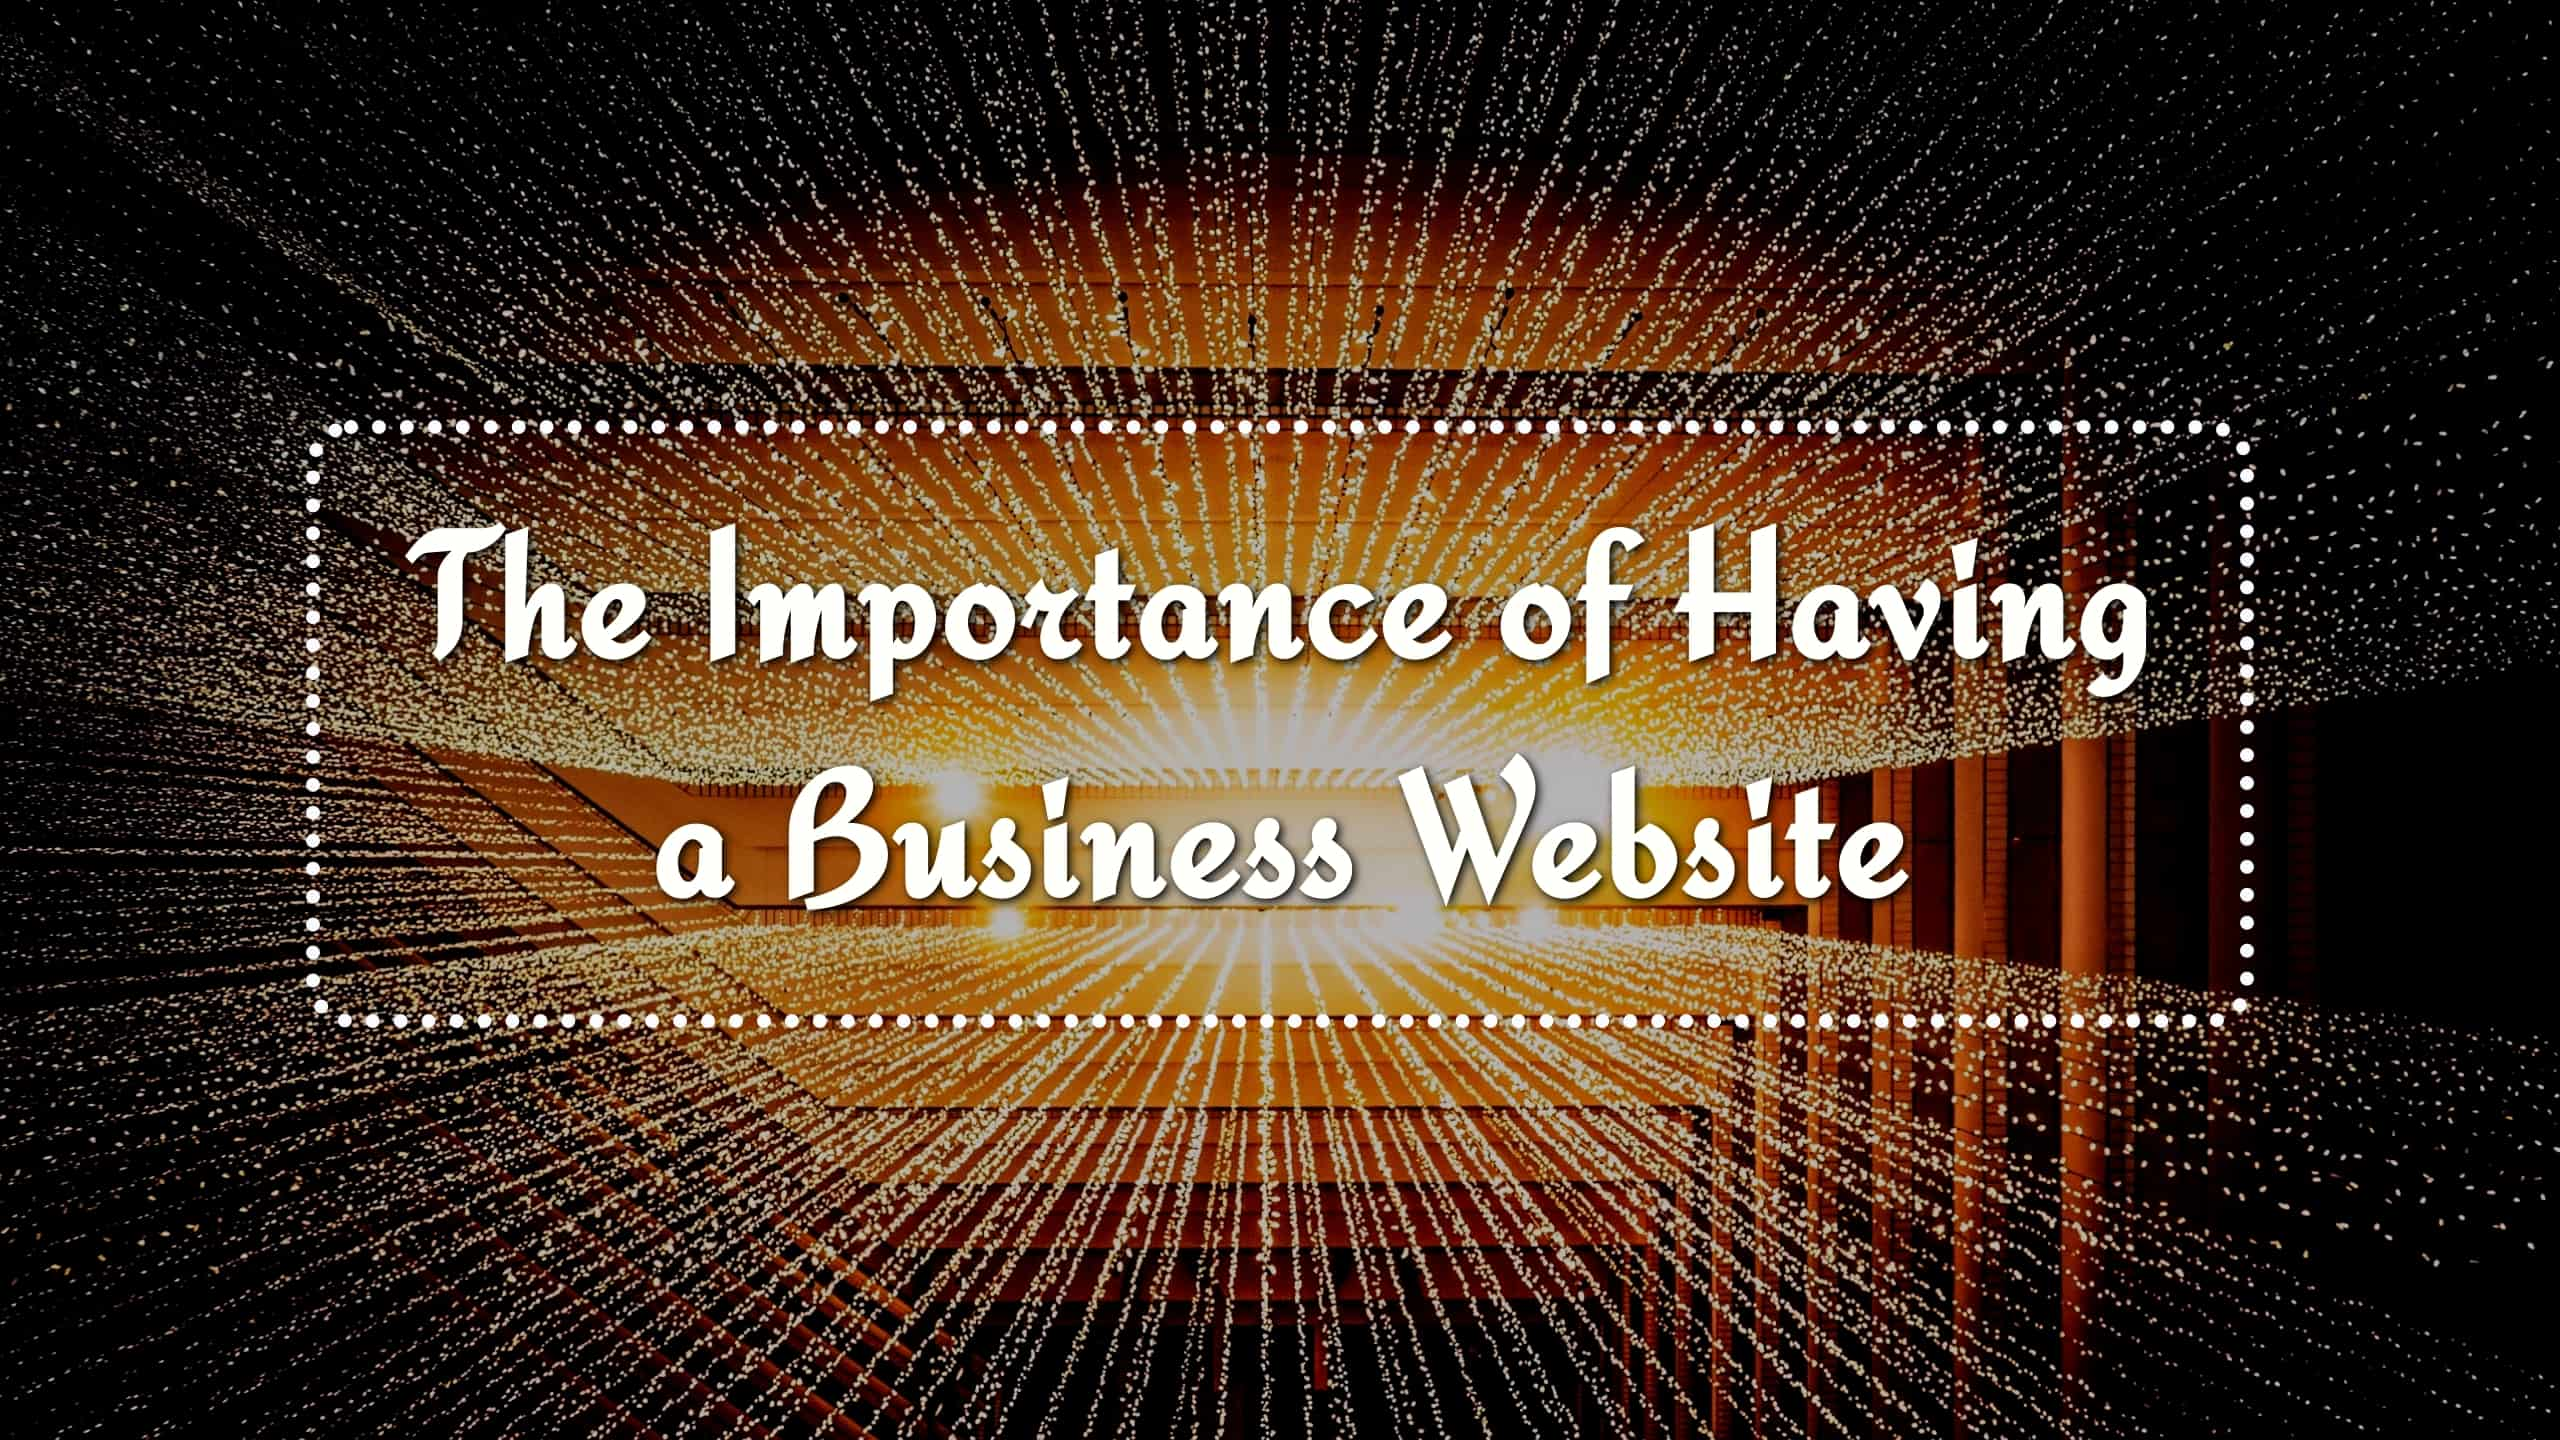 The Importance of Having a Business Website